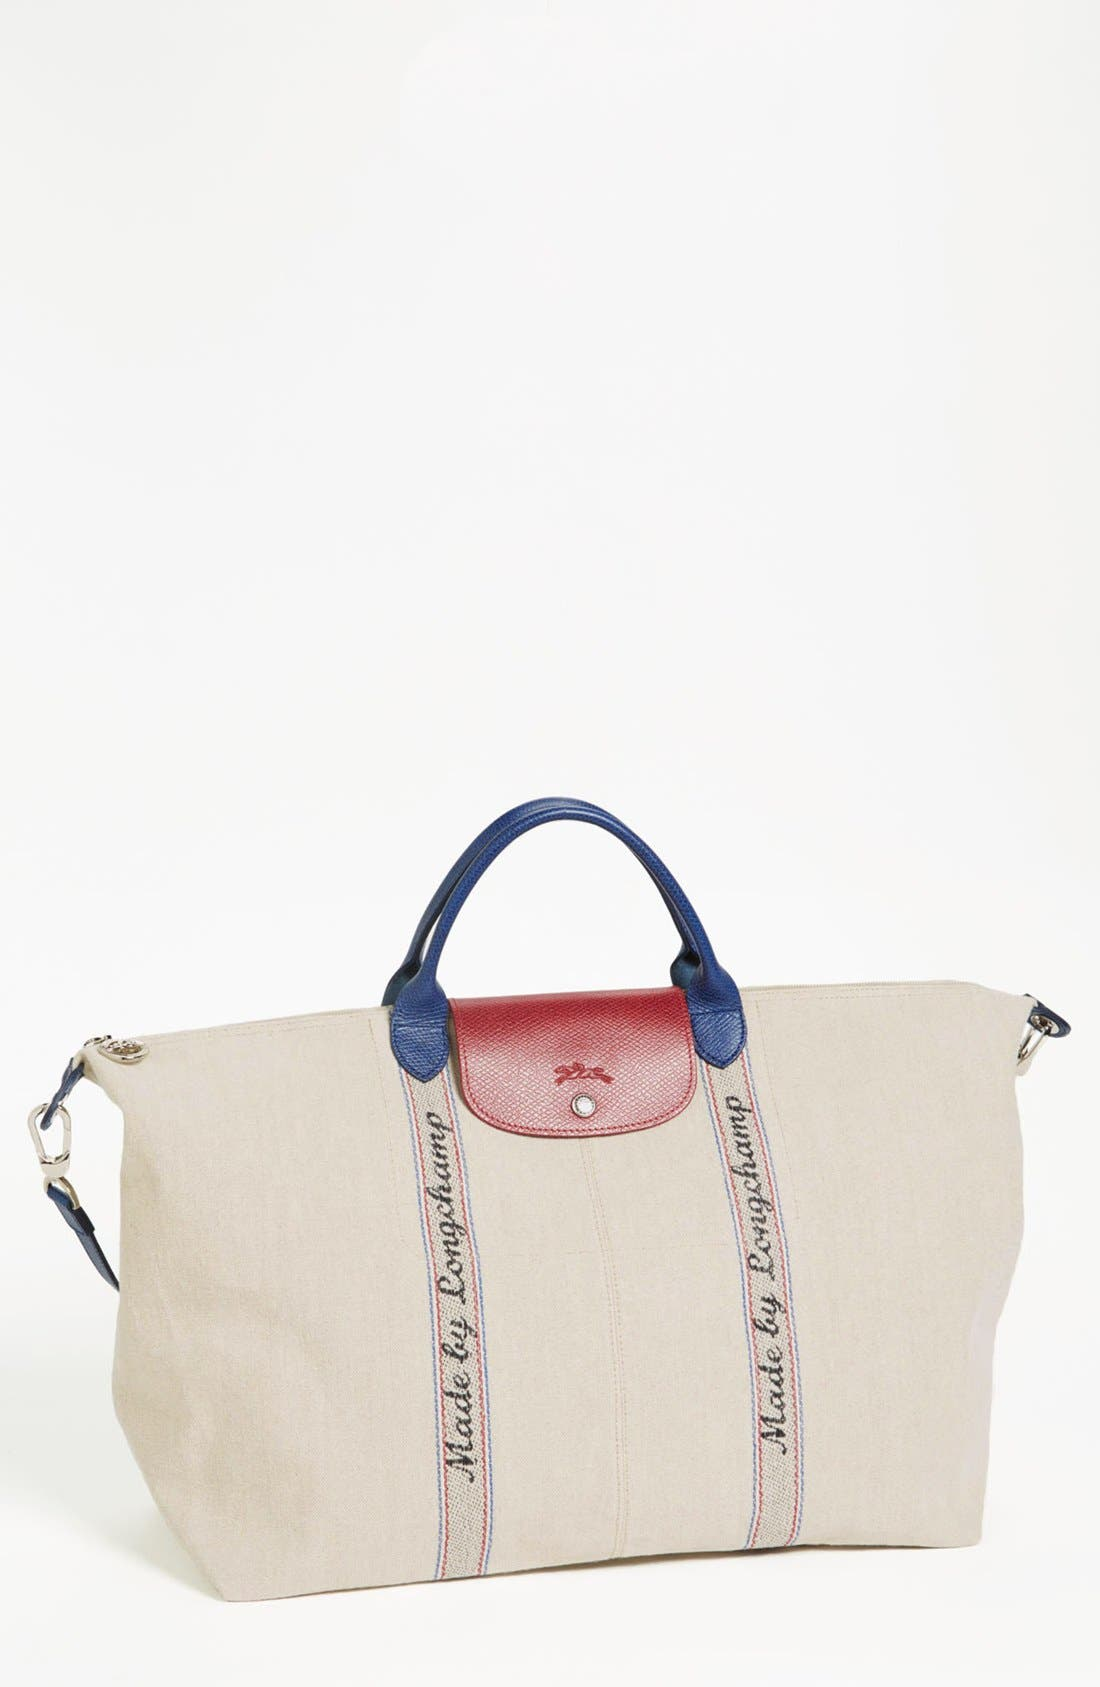 Main Image - Longchamp 'Made by Longchamp' Travel Tote